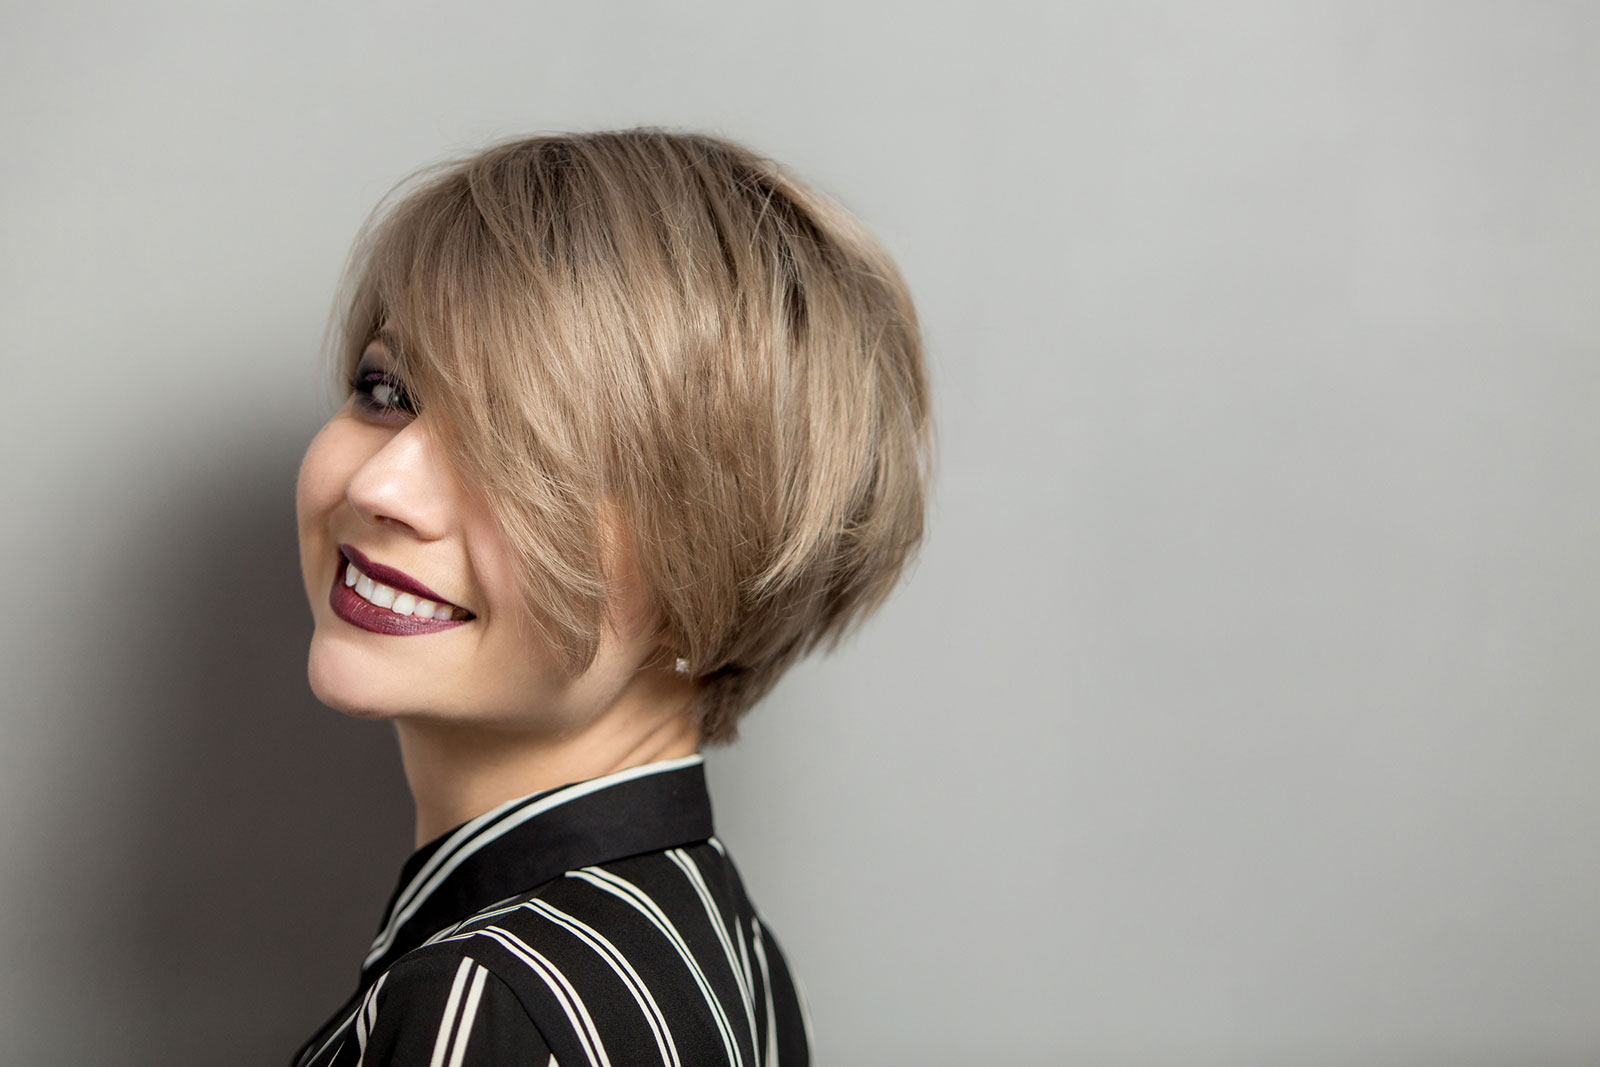 Ash blonde multi-layered asymmetric Short bob haircut